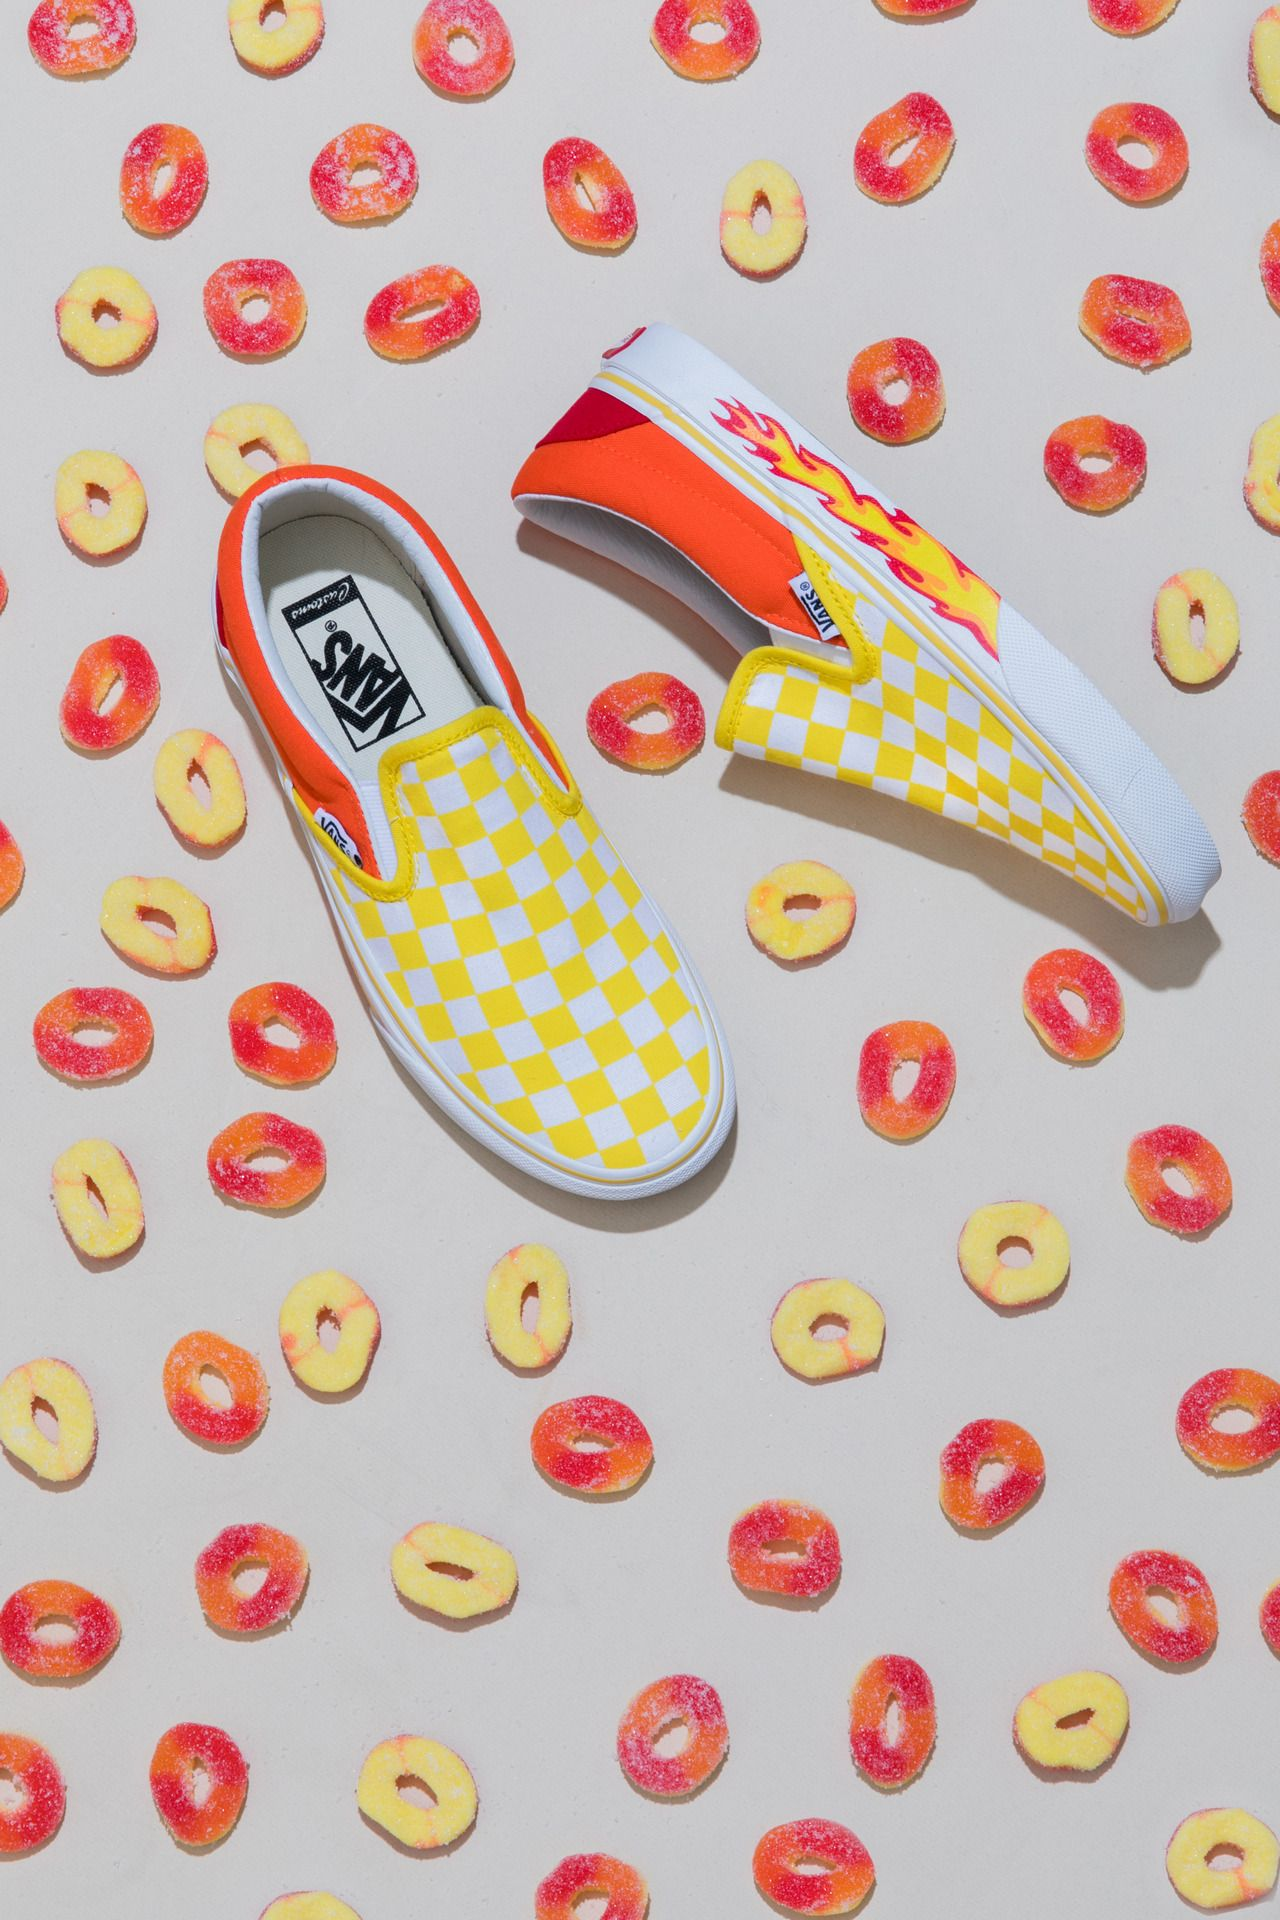 8acee44d53 Peachy keen  mix and match your favorite colors and patterns to design your  perfect pair of Vans. Make your own at vans.com customs